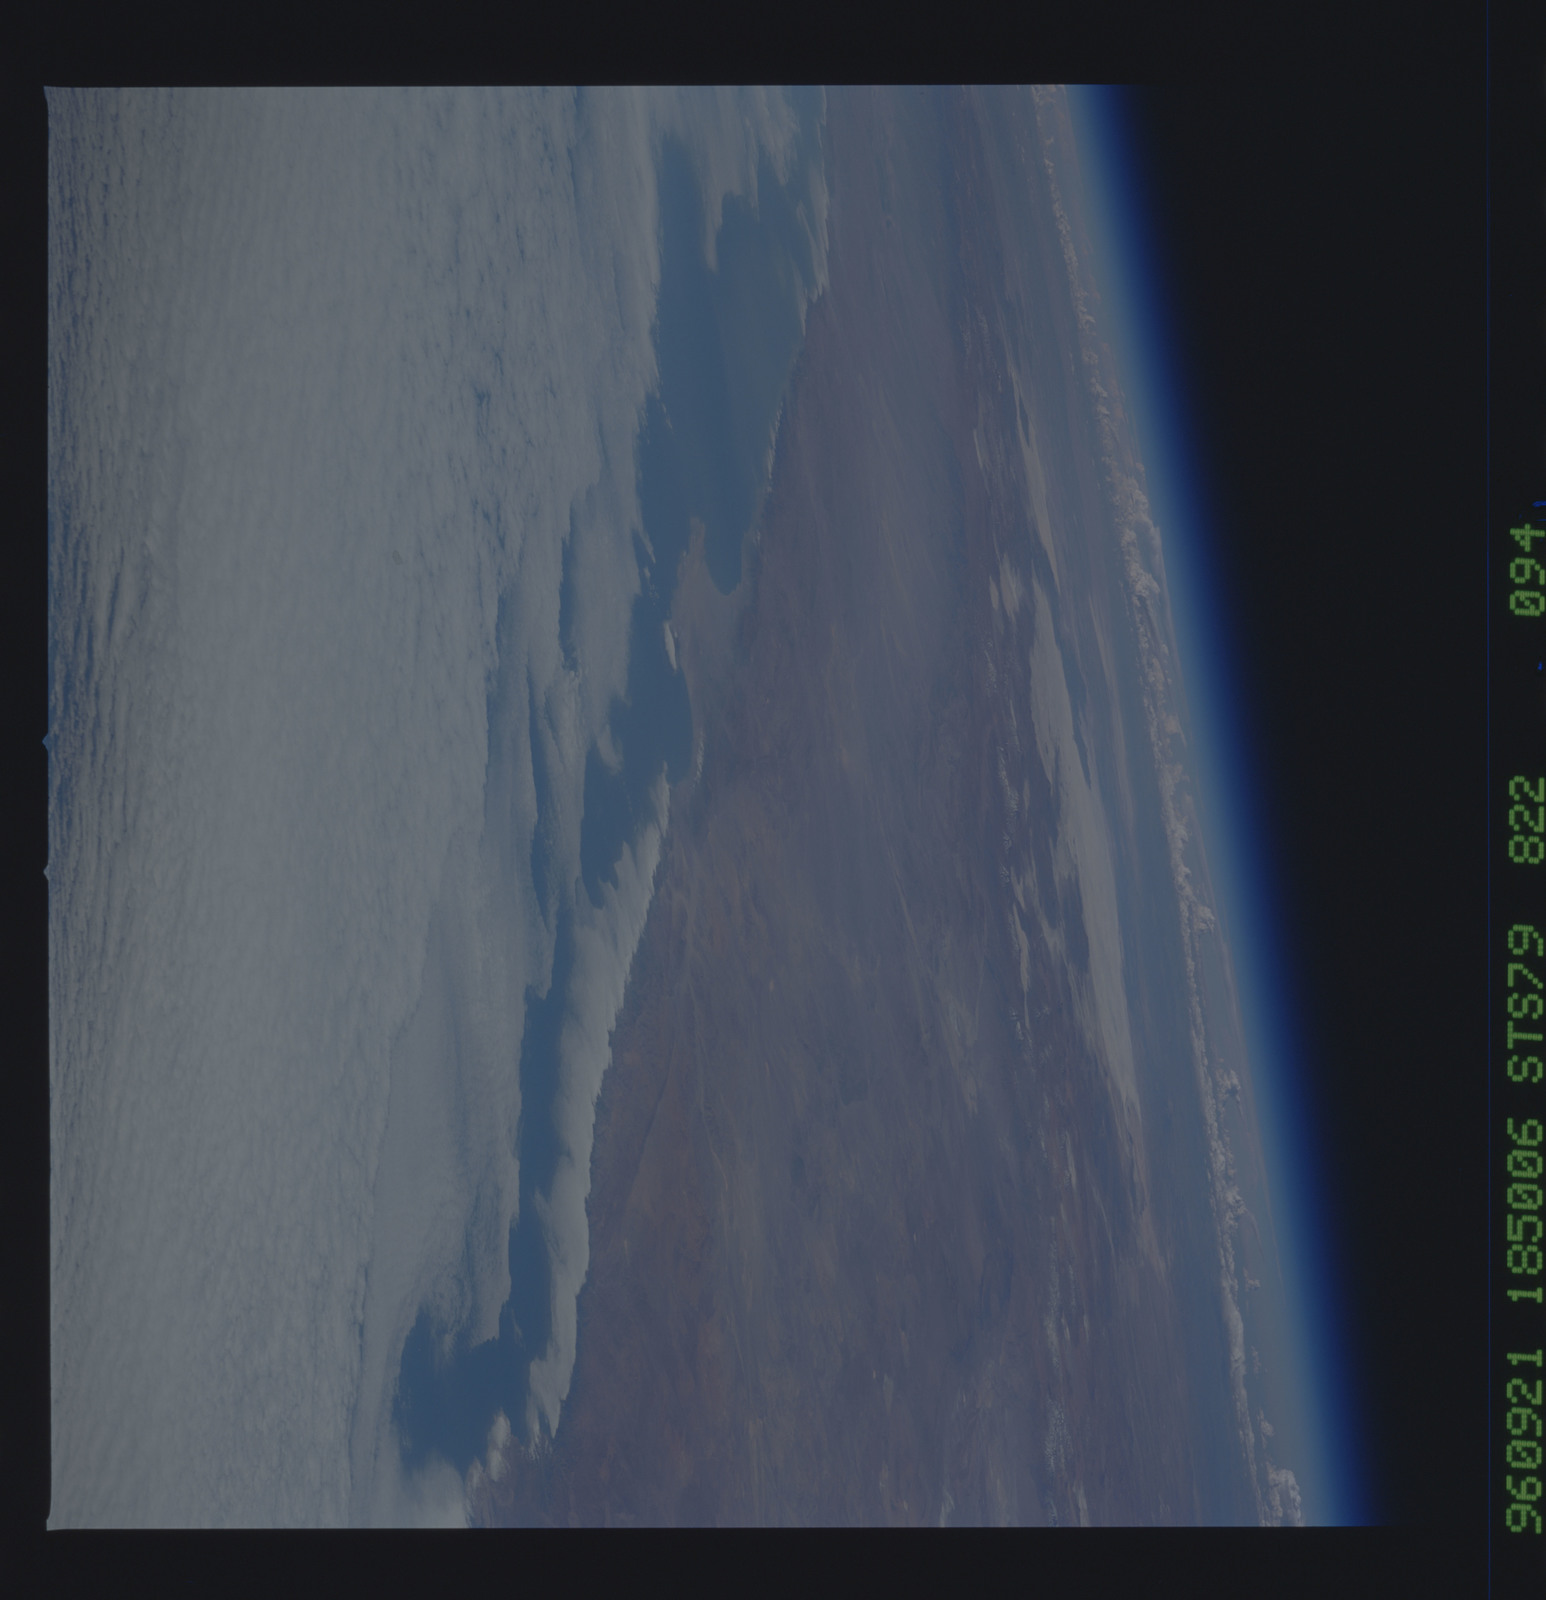 STS079-822-094 - STS-079 - Earth observations taken during STS-79 mission